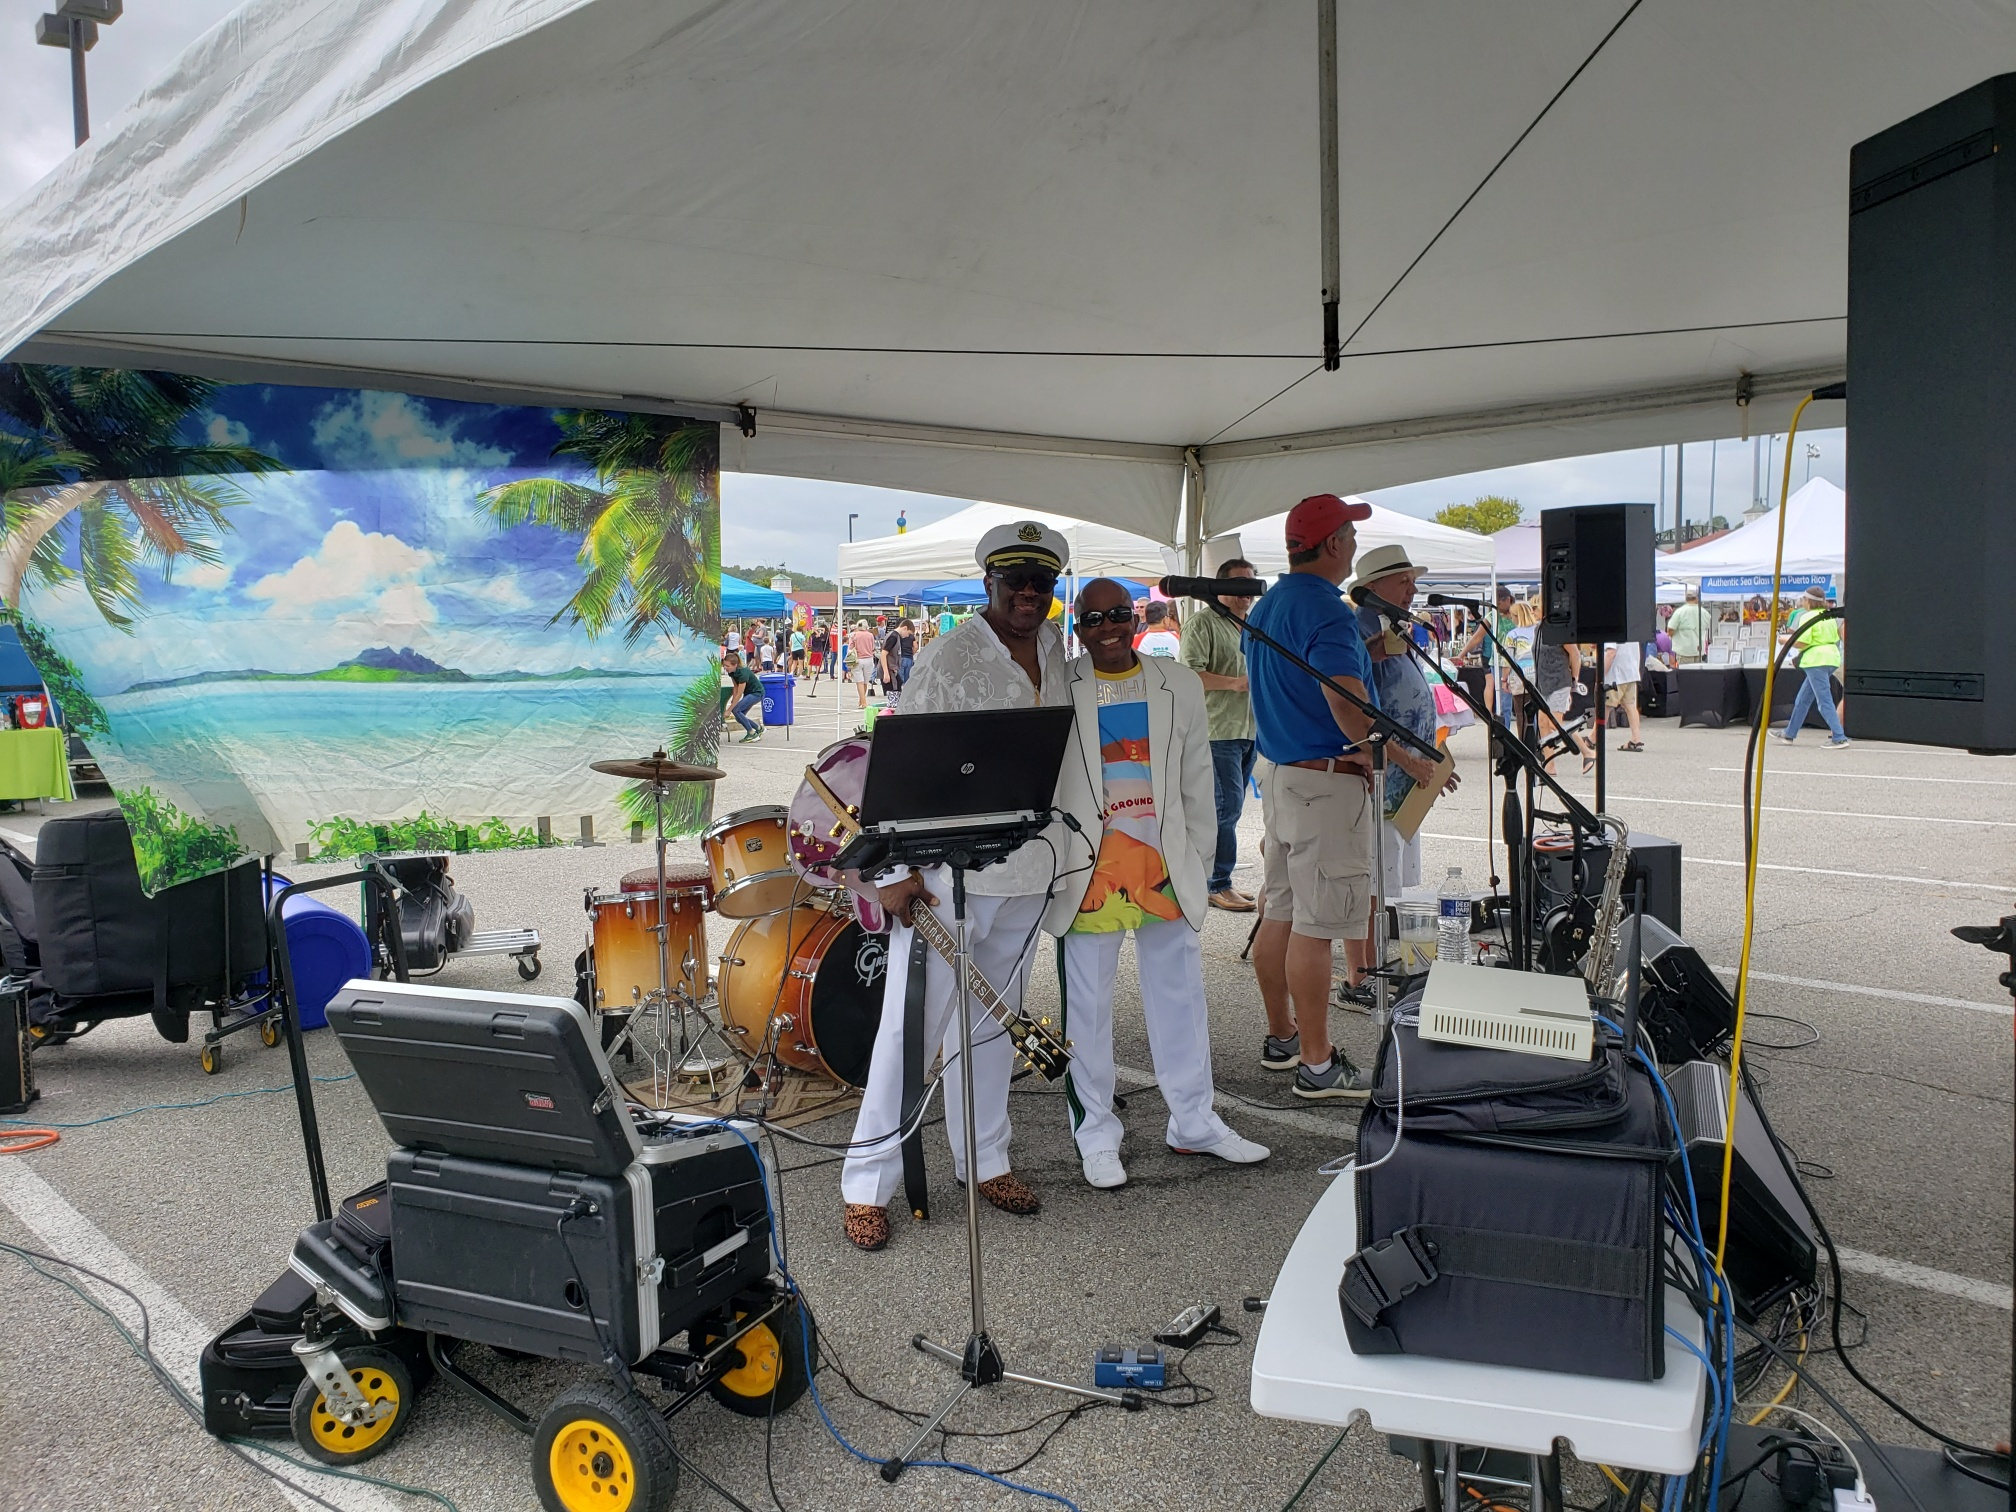 Johnny Long playing Tenor Sax with Kenny Holmes (Guitar) and Denise Johnson (Drums) at show in Chesapeake Beach, MD